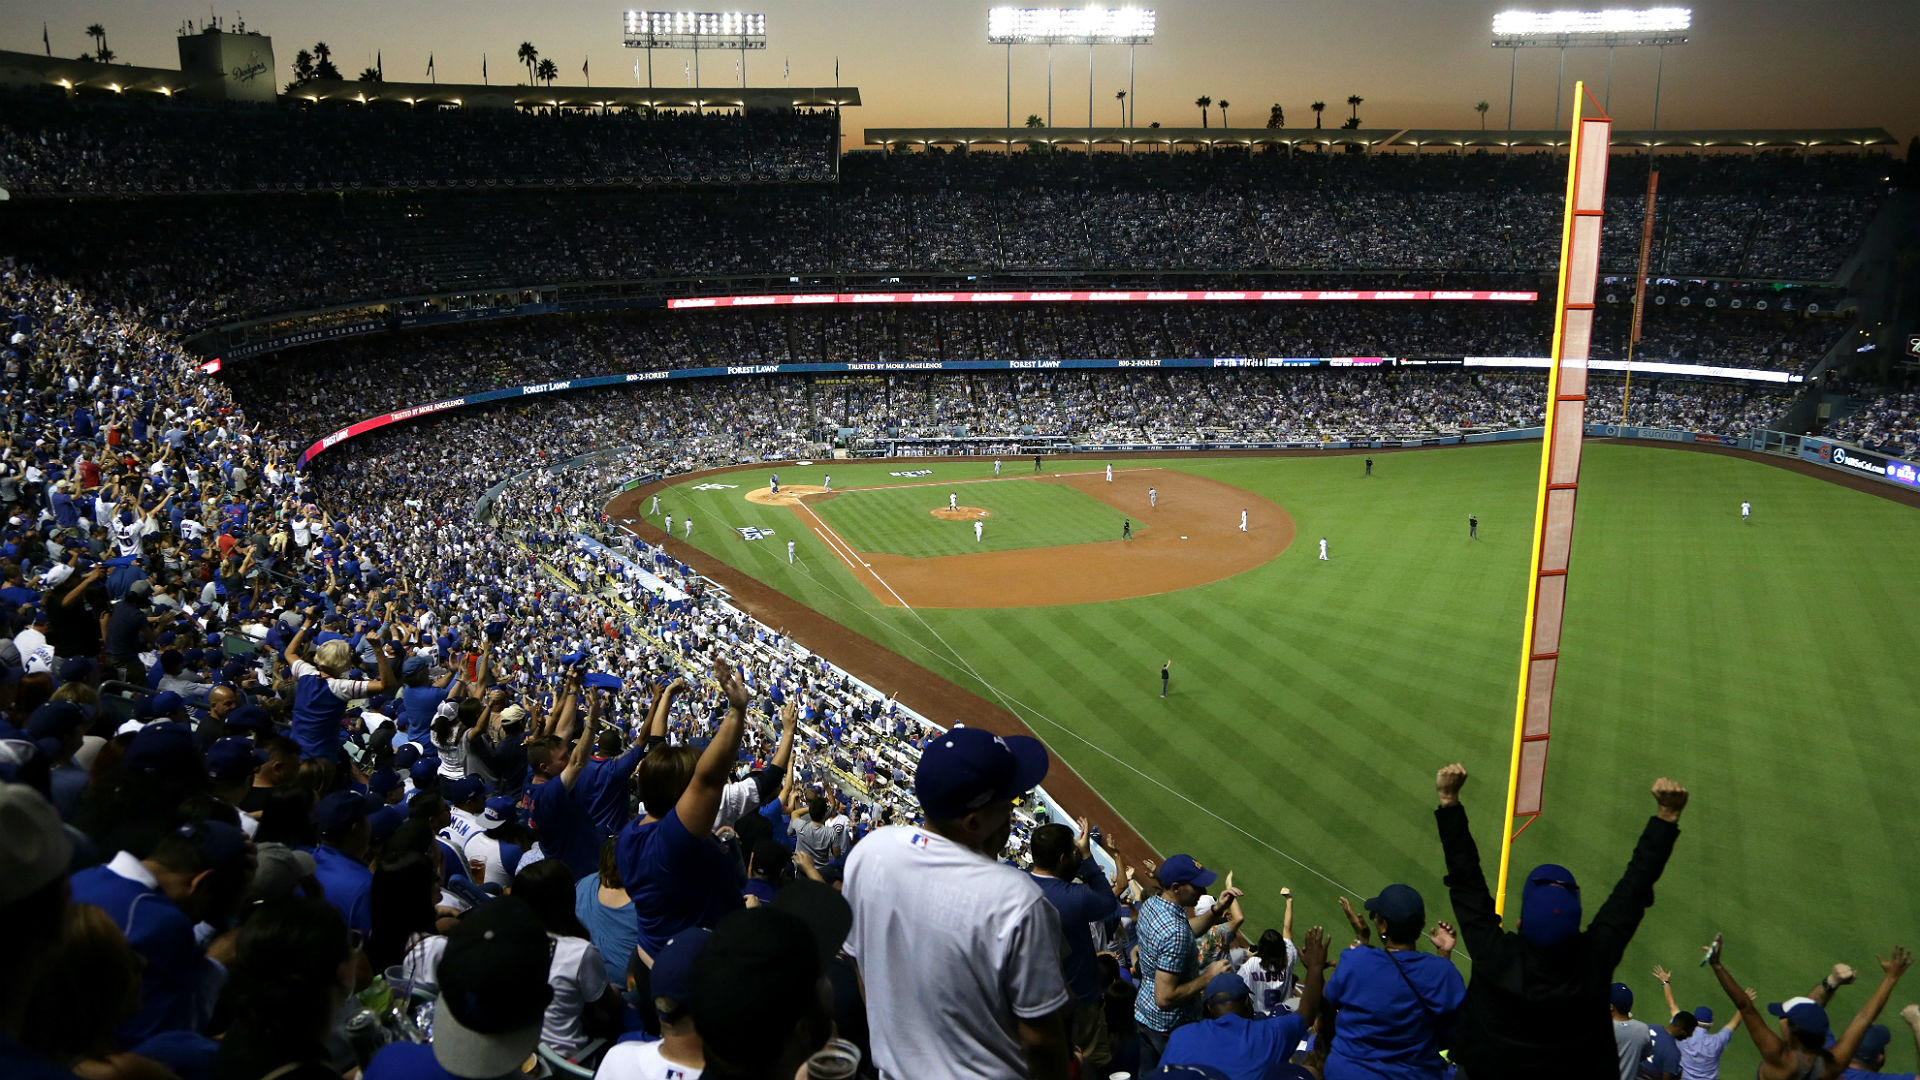 Dodgers reportedly soliciting naming rights for Dodger Stadium field